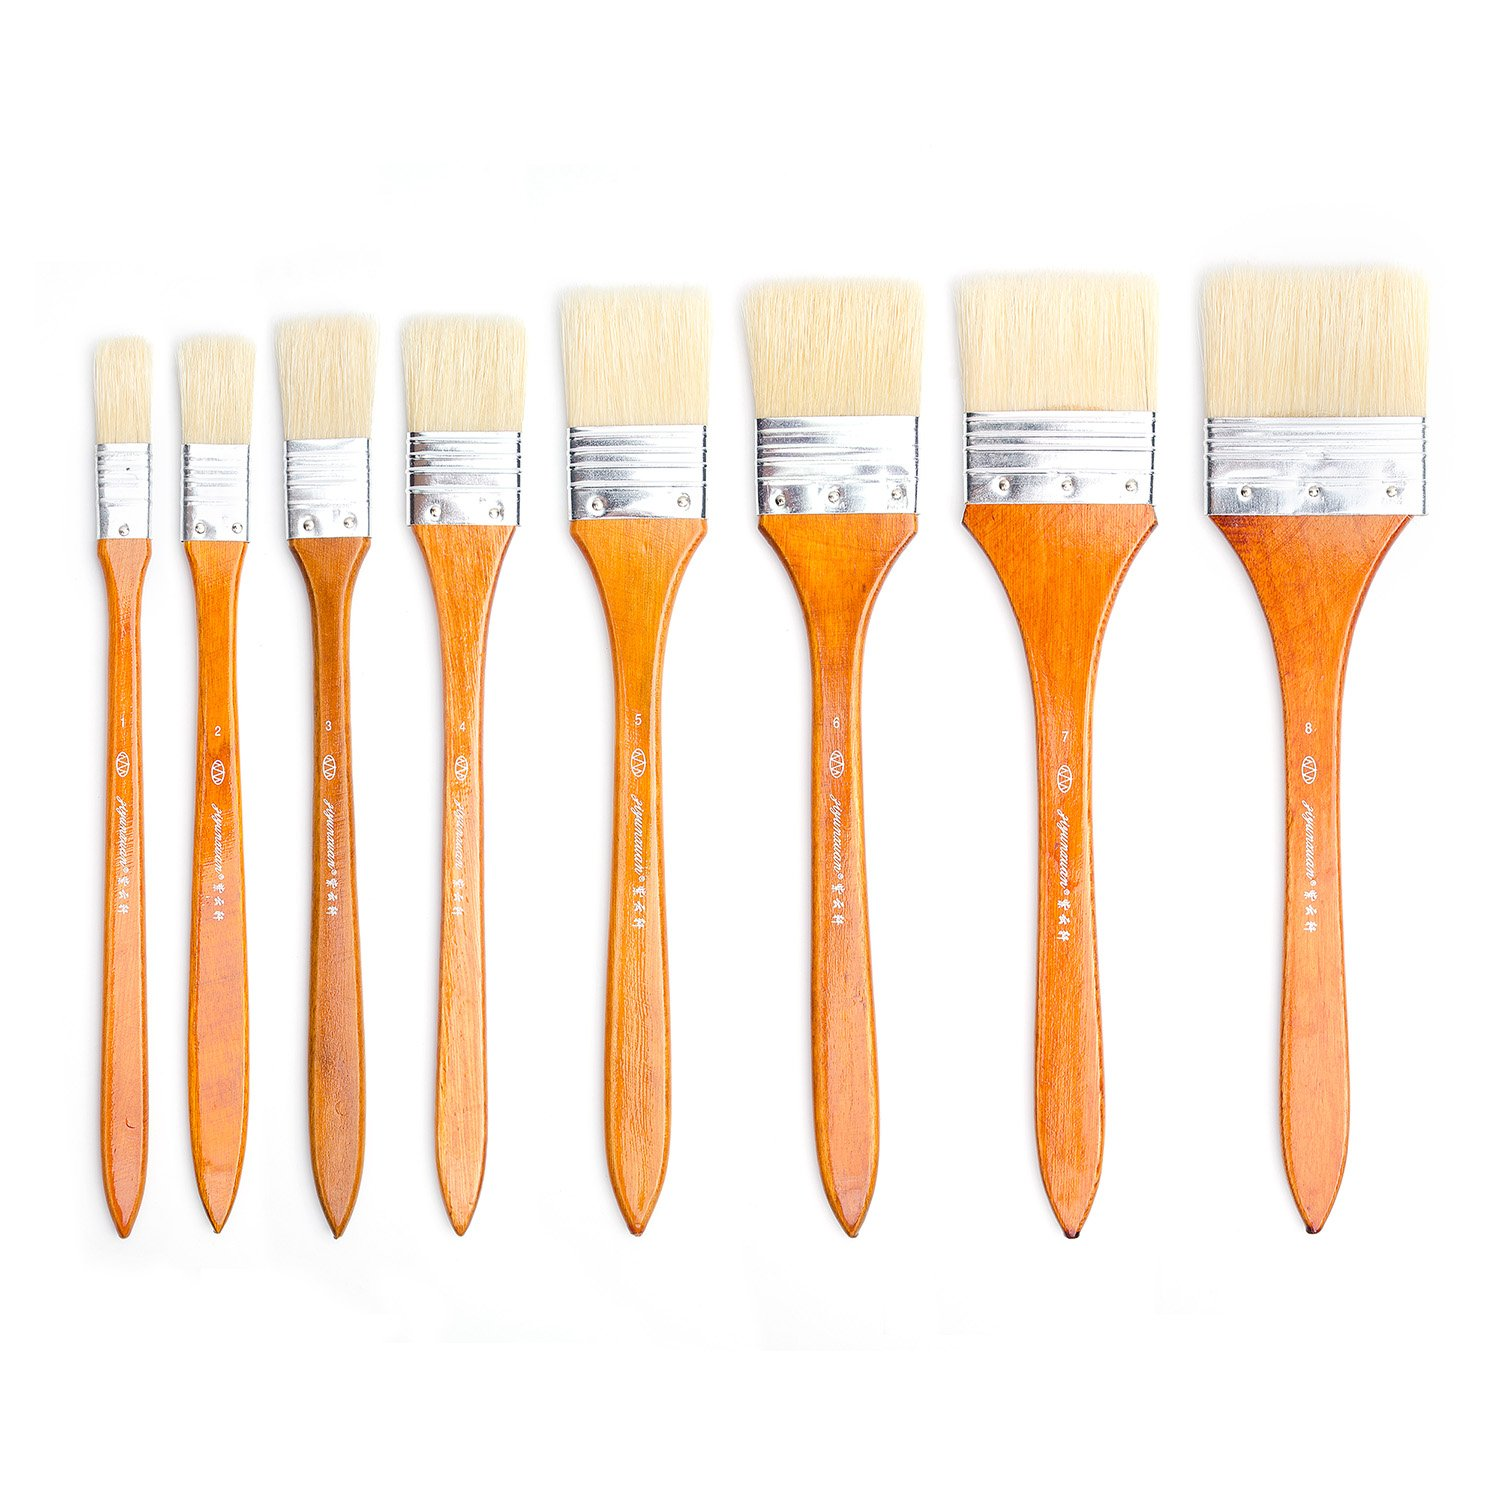 8 Pieces Large Flat Artist Bristle Paint brush Wash Brushes Set for Oil Water Color Acrylic Paint Lightwish